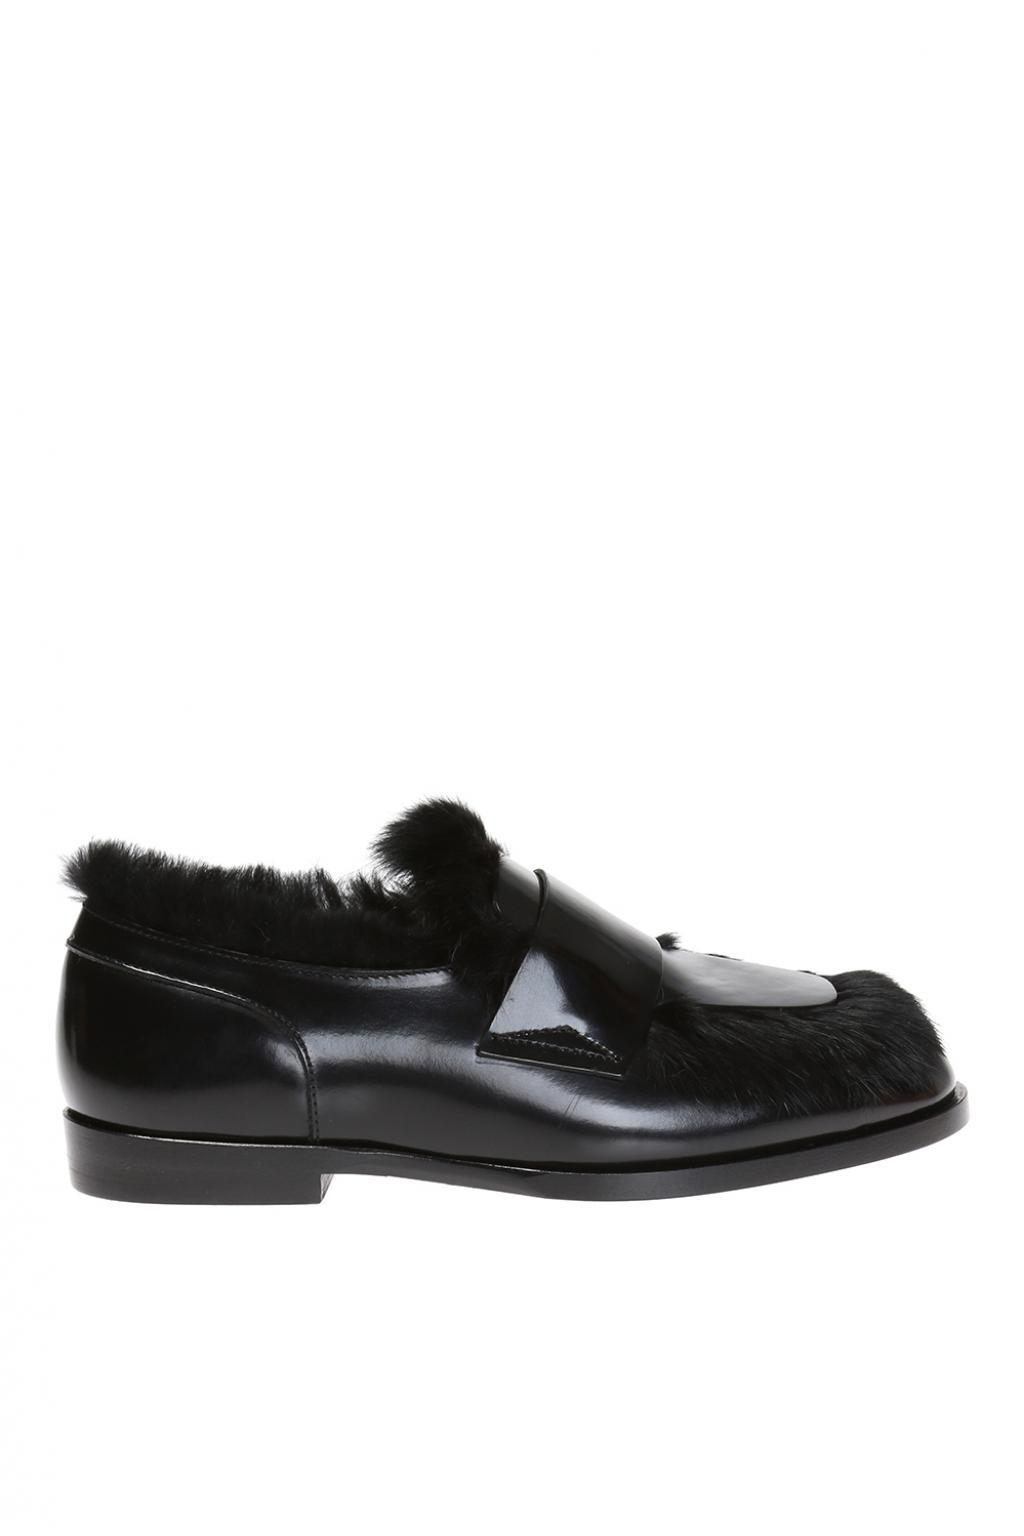 Jimmy Choo Tedi/F loafers - Black farfetch neri